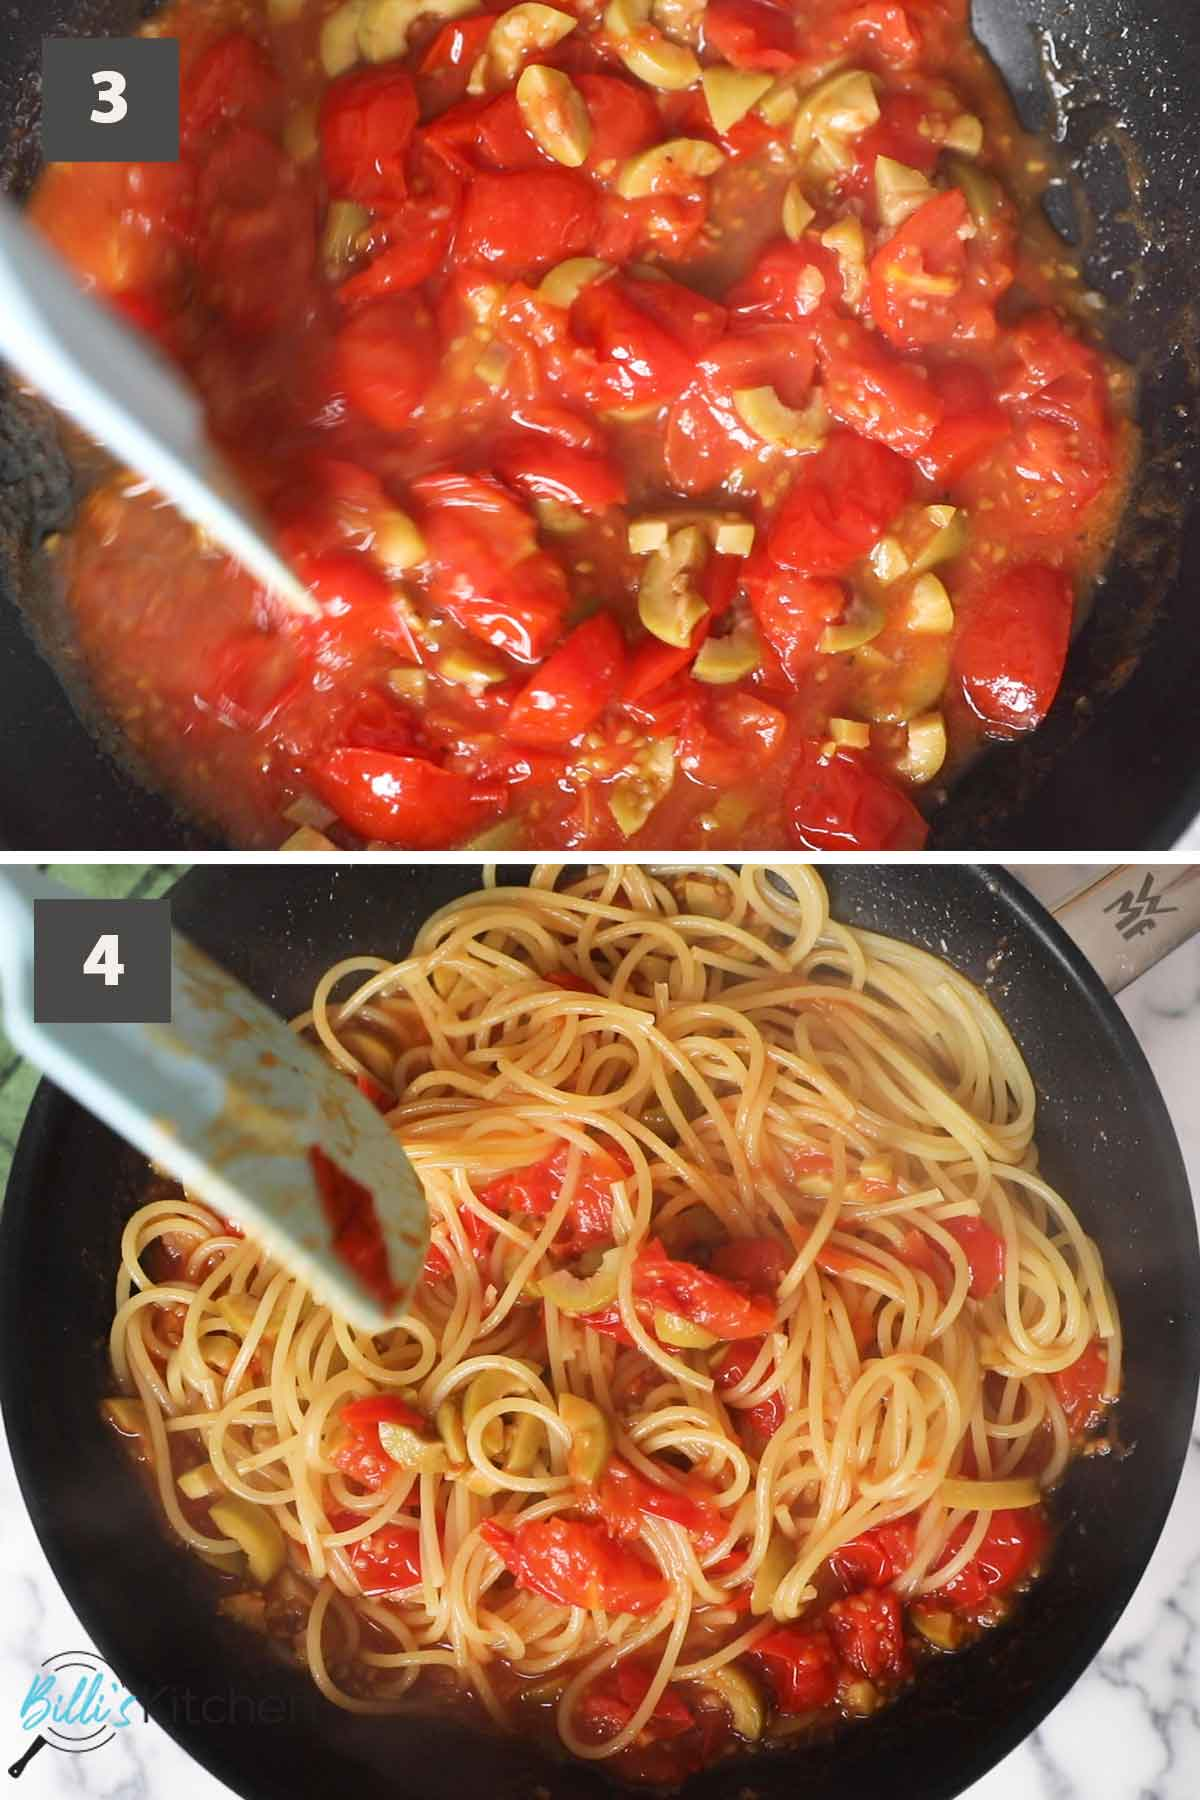 Second part of a collage of images showing how to prepare 15-Minute Cherry Tomato Pasta.